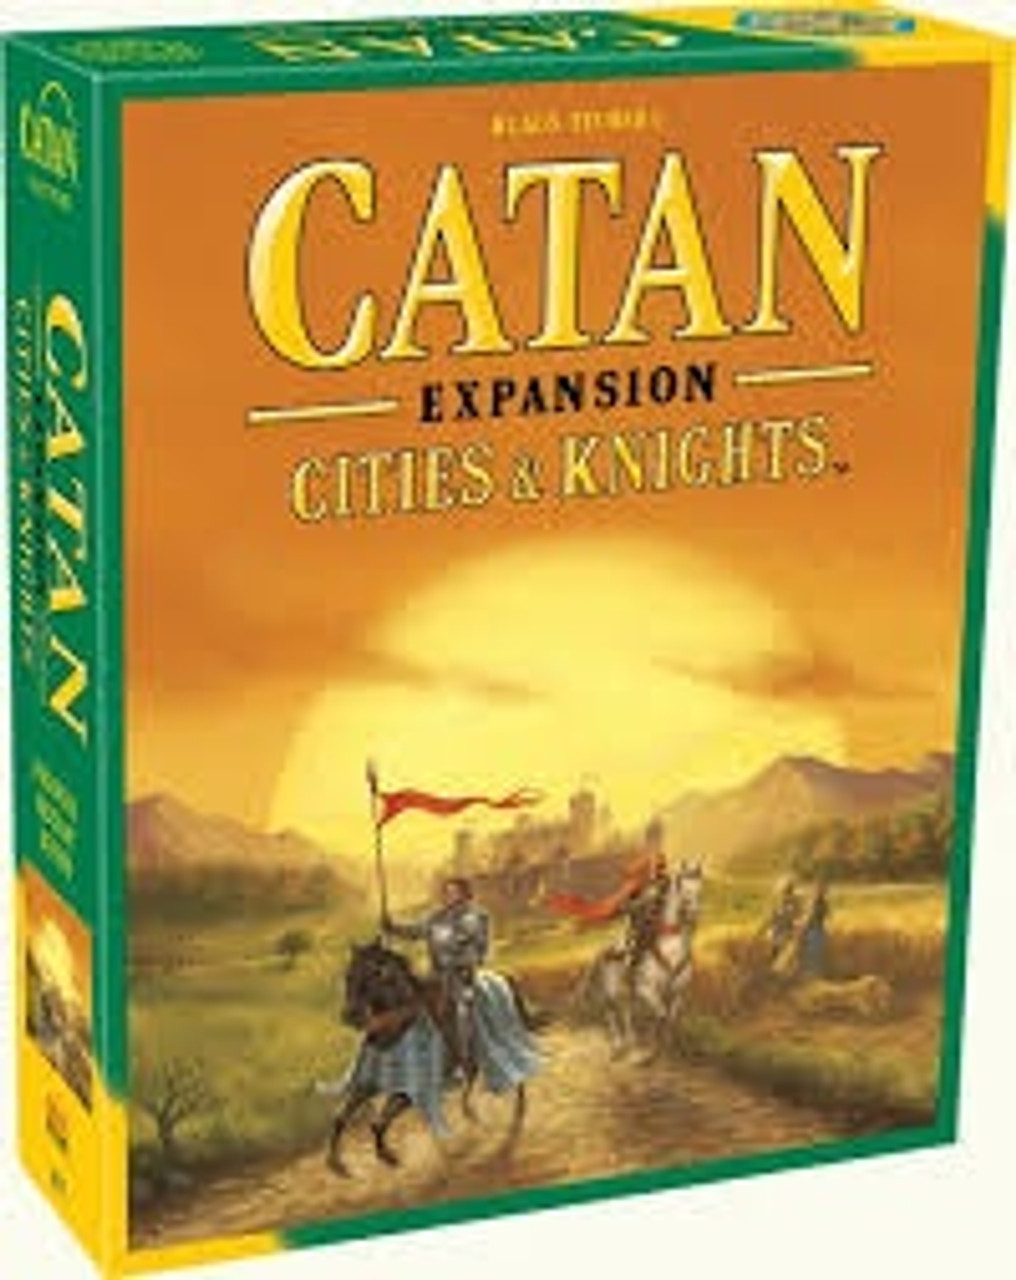 CATAN EXPANSION CITIES & KNIGHTS